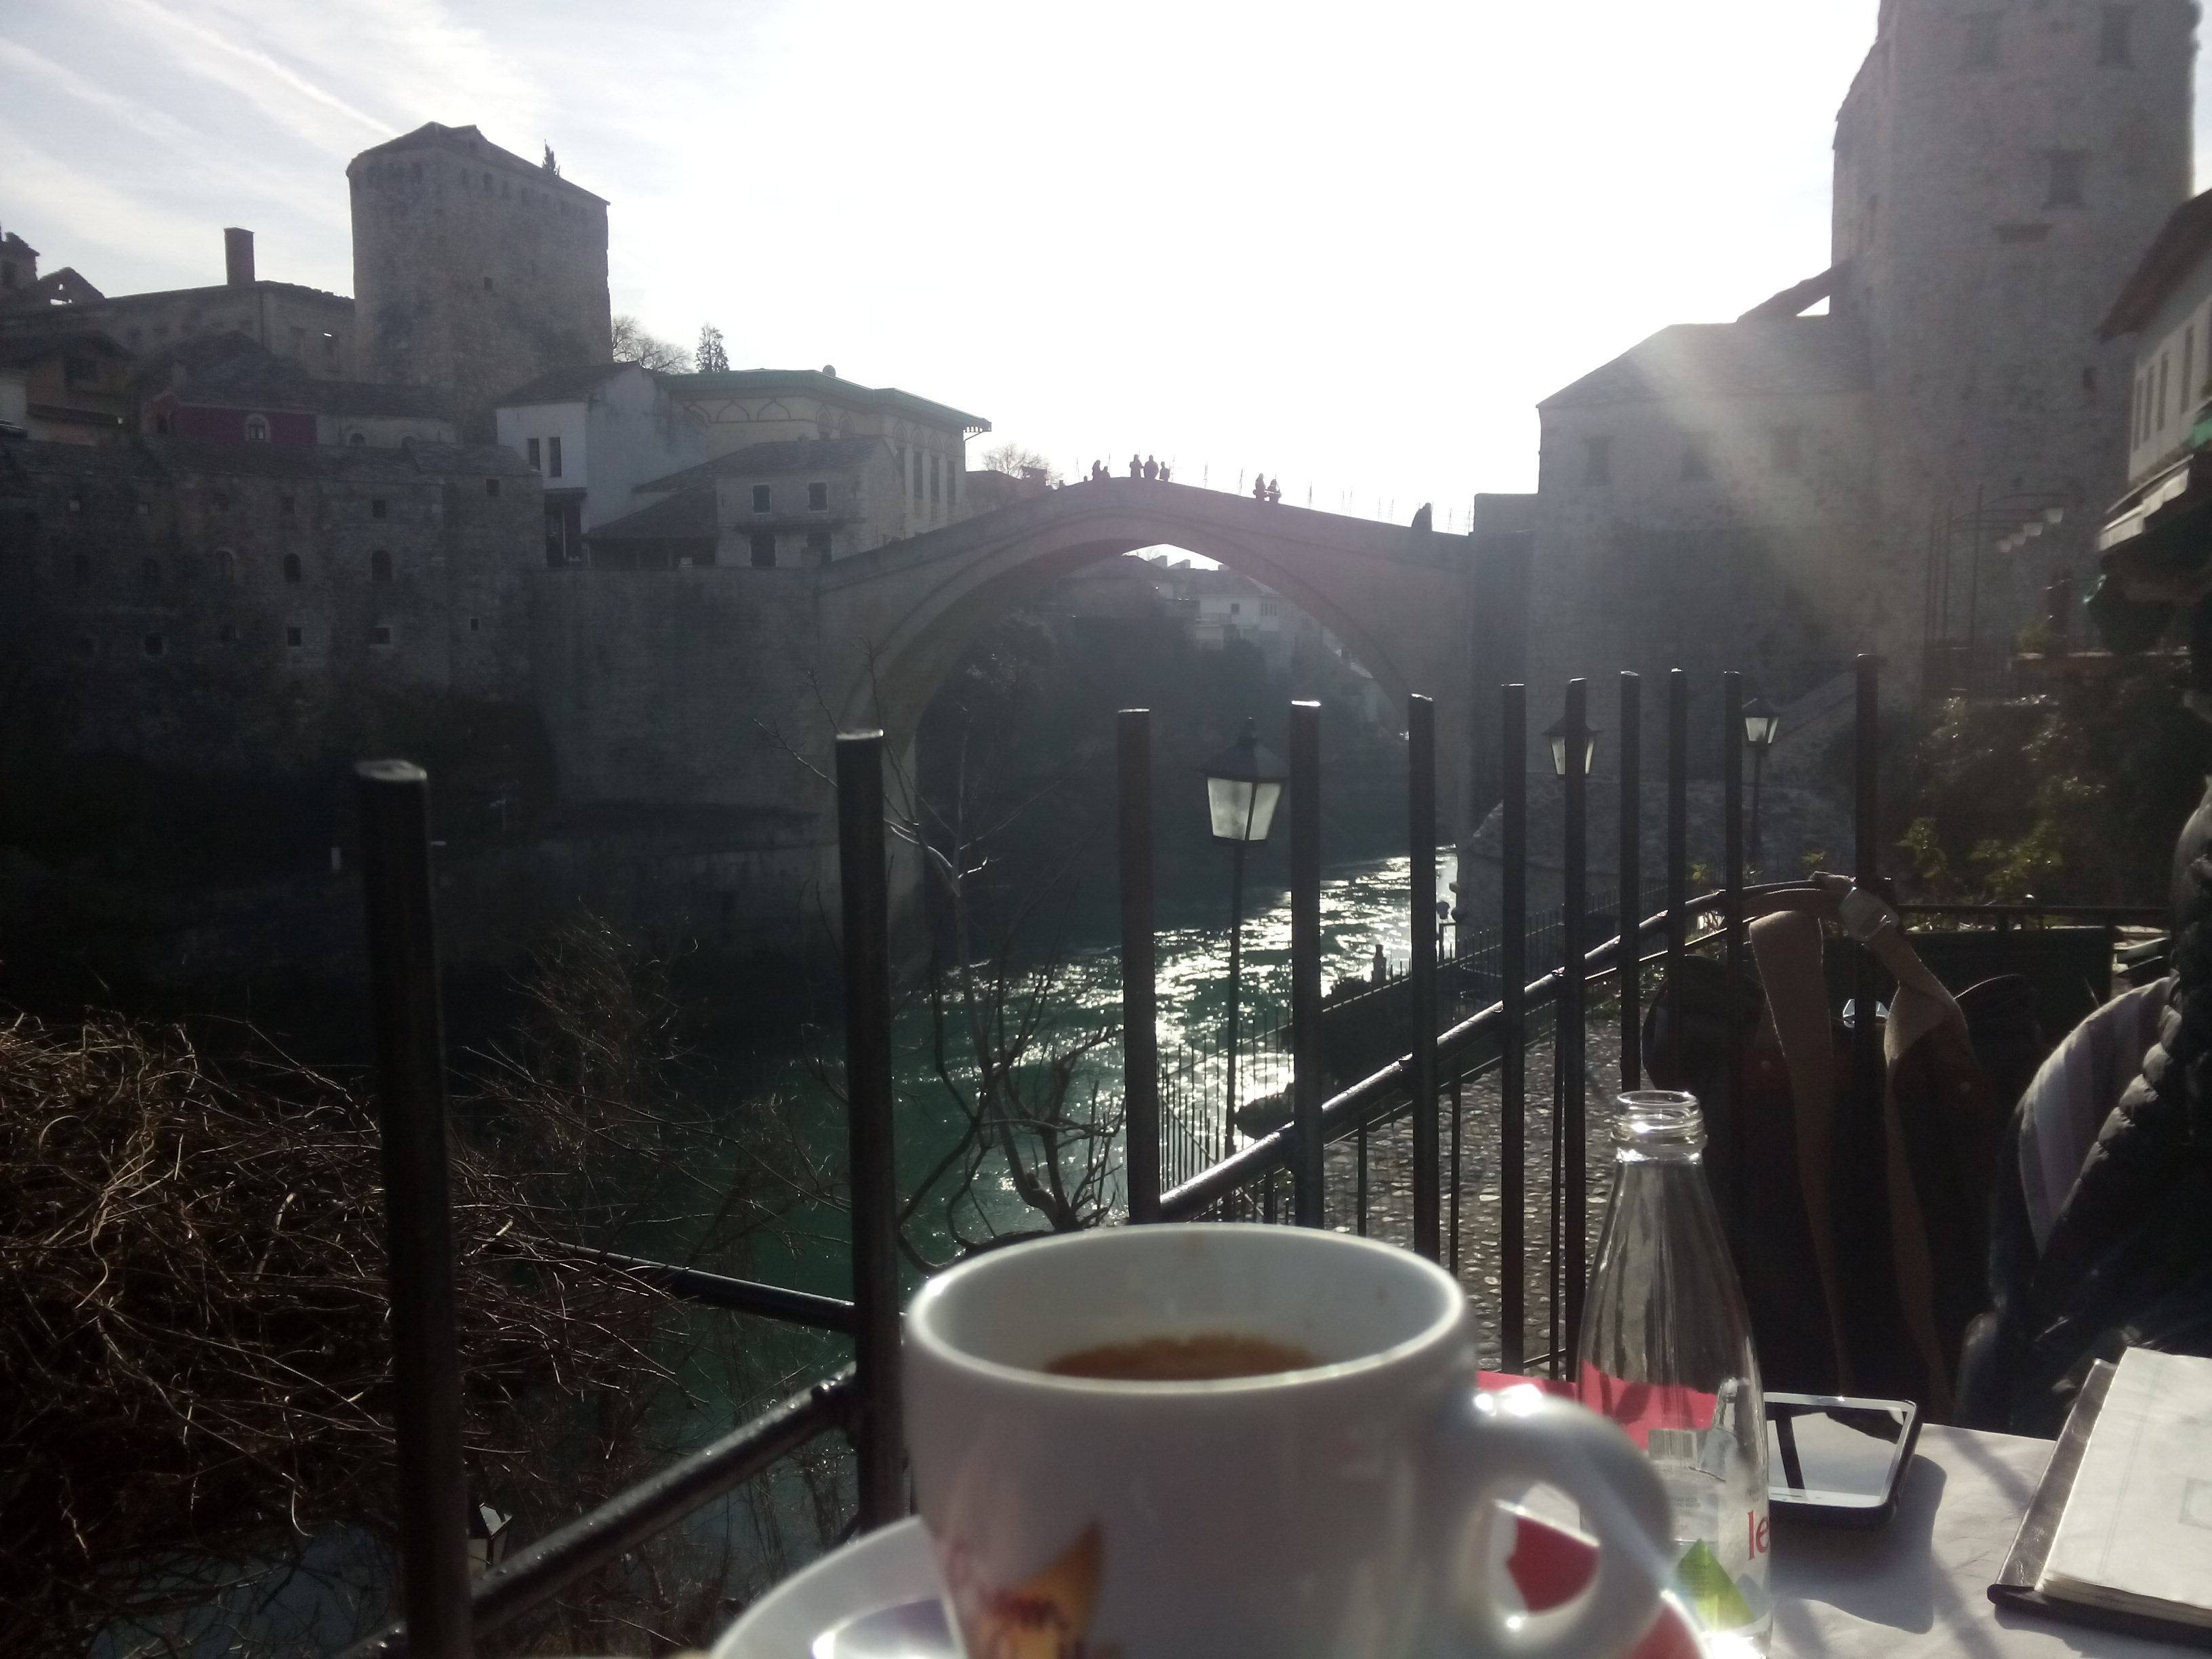 A whit eexpresso cup in the foreground with the river and Mostar bridge in the background